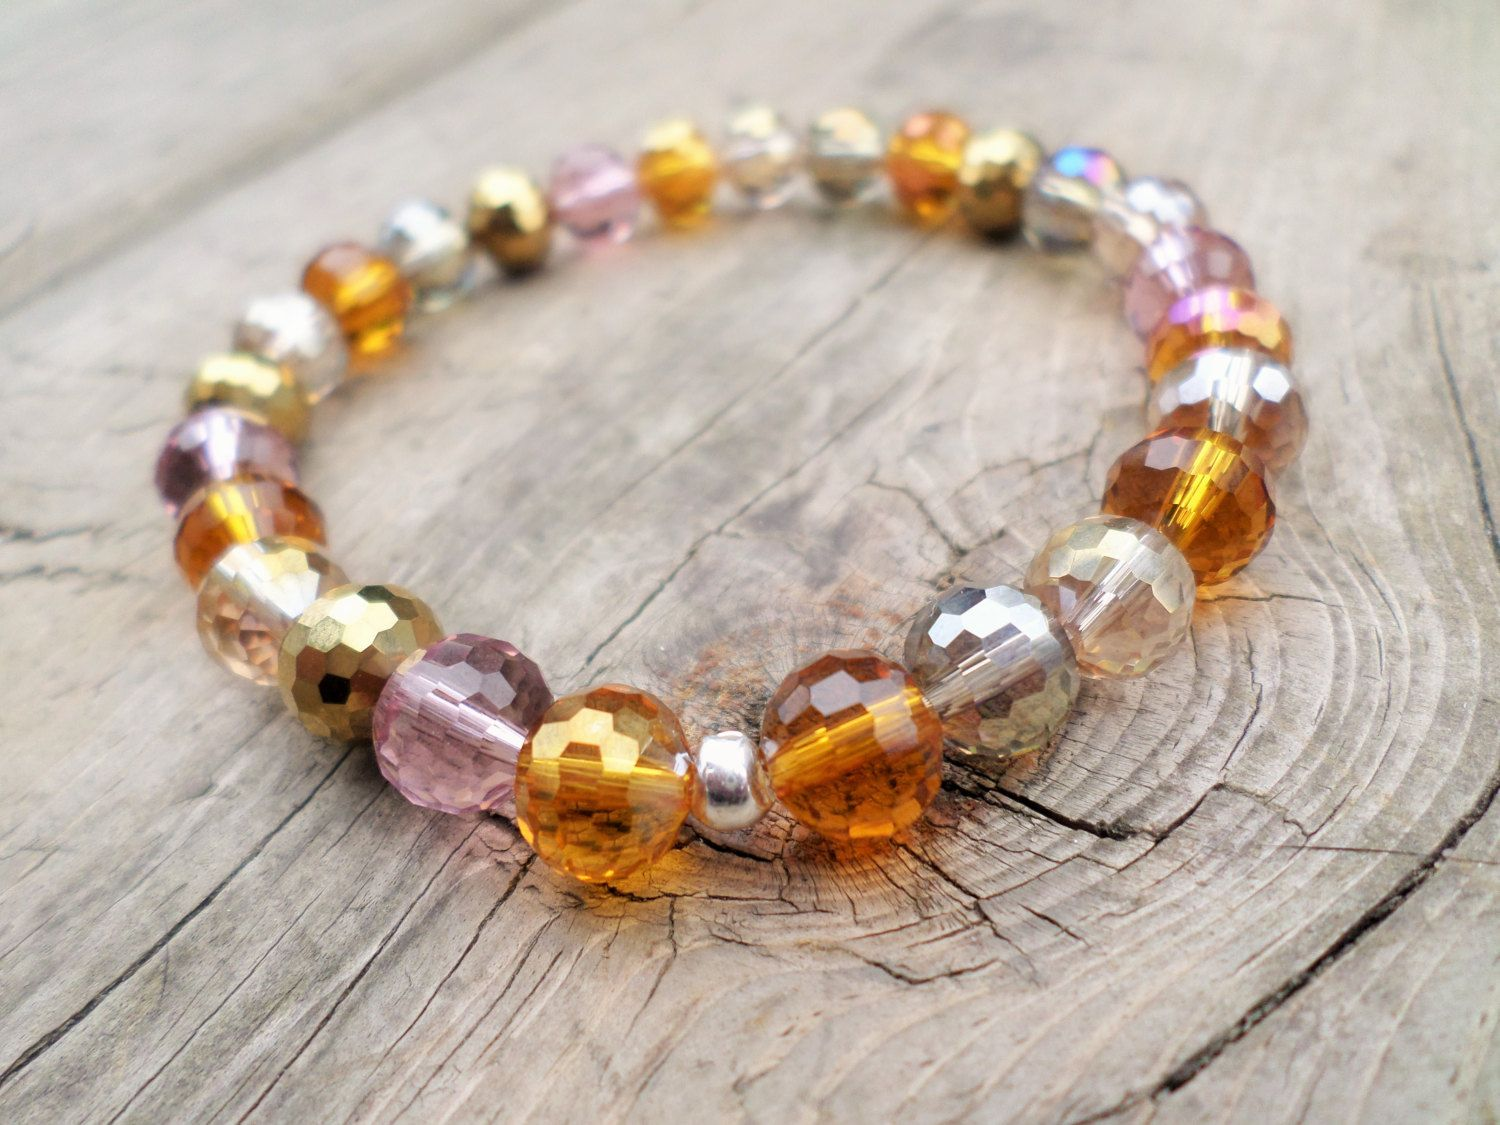 Amber Glow Faceted Crystal Stretch Bracelet Sterling Silver Large by BeadingonaBudget on Etsy